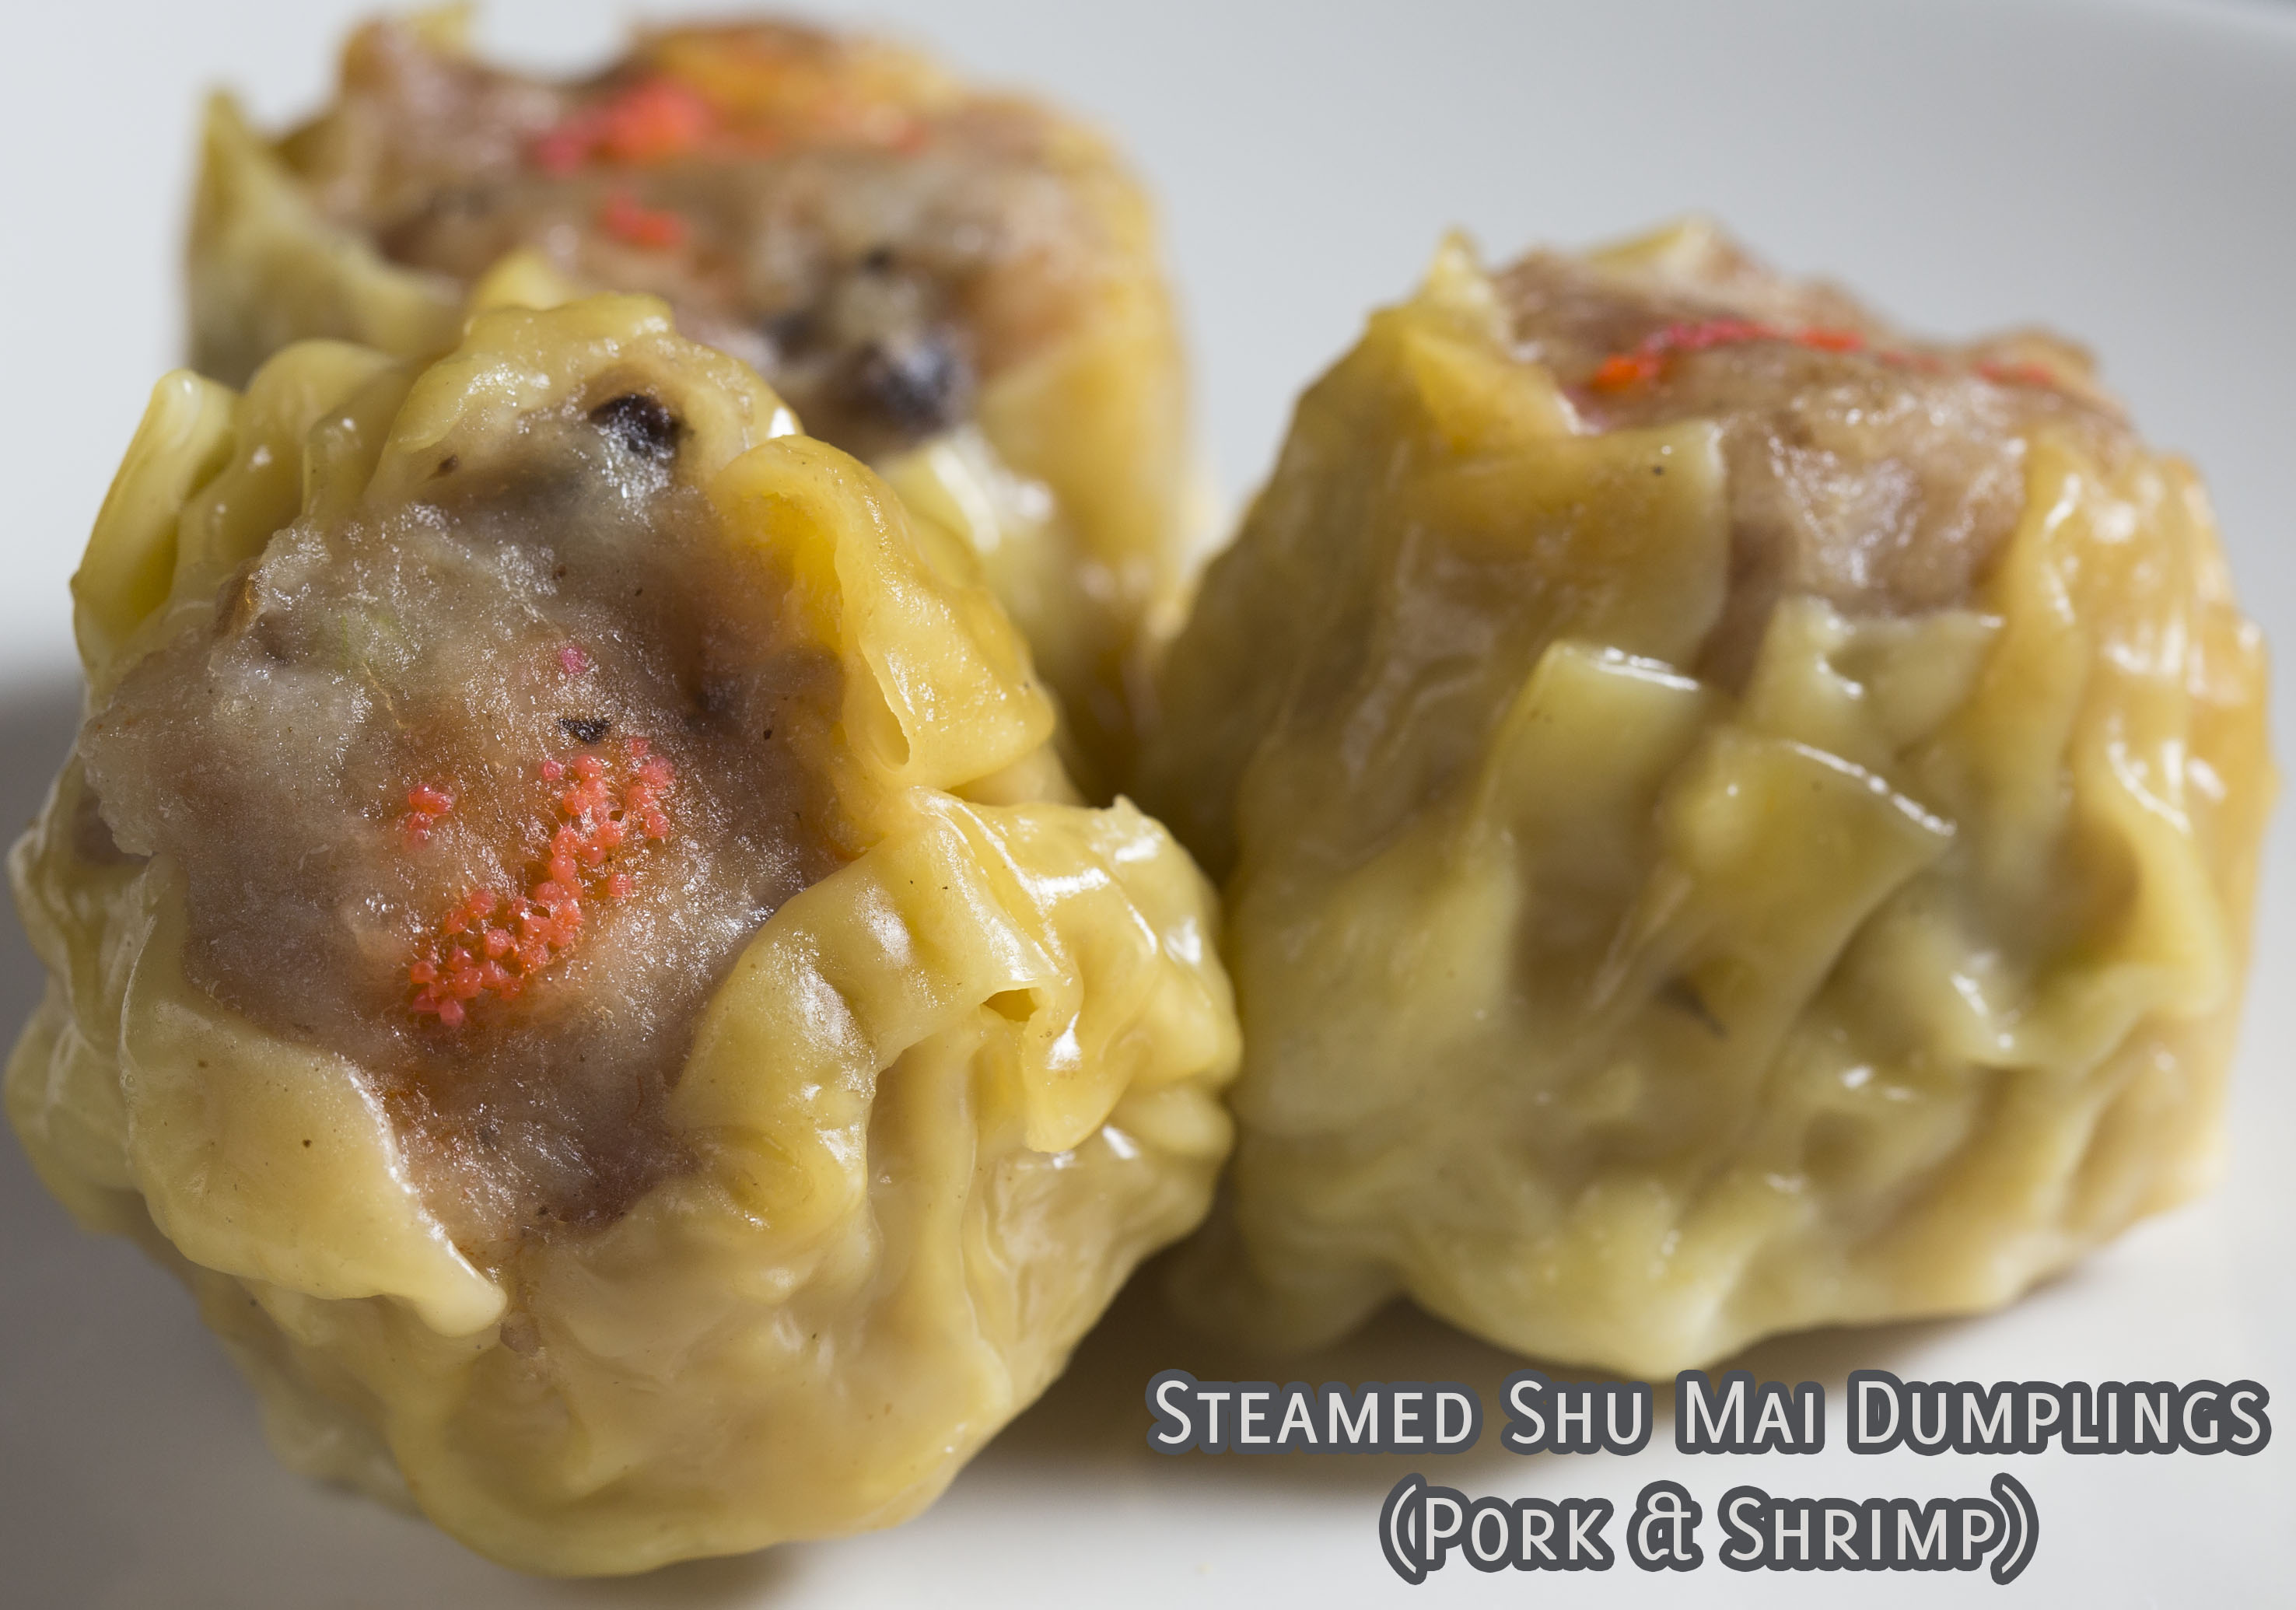 Steamed Shu Mai Dumplings